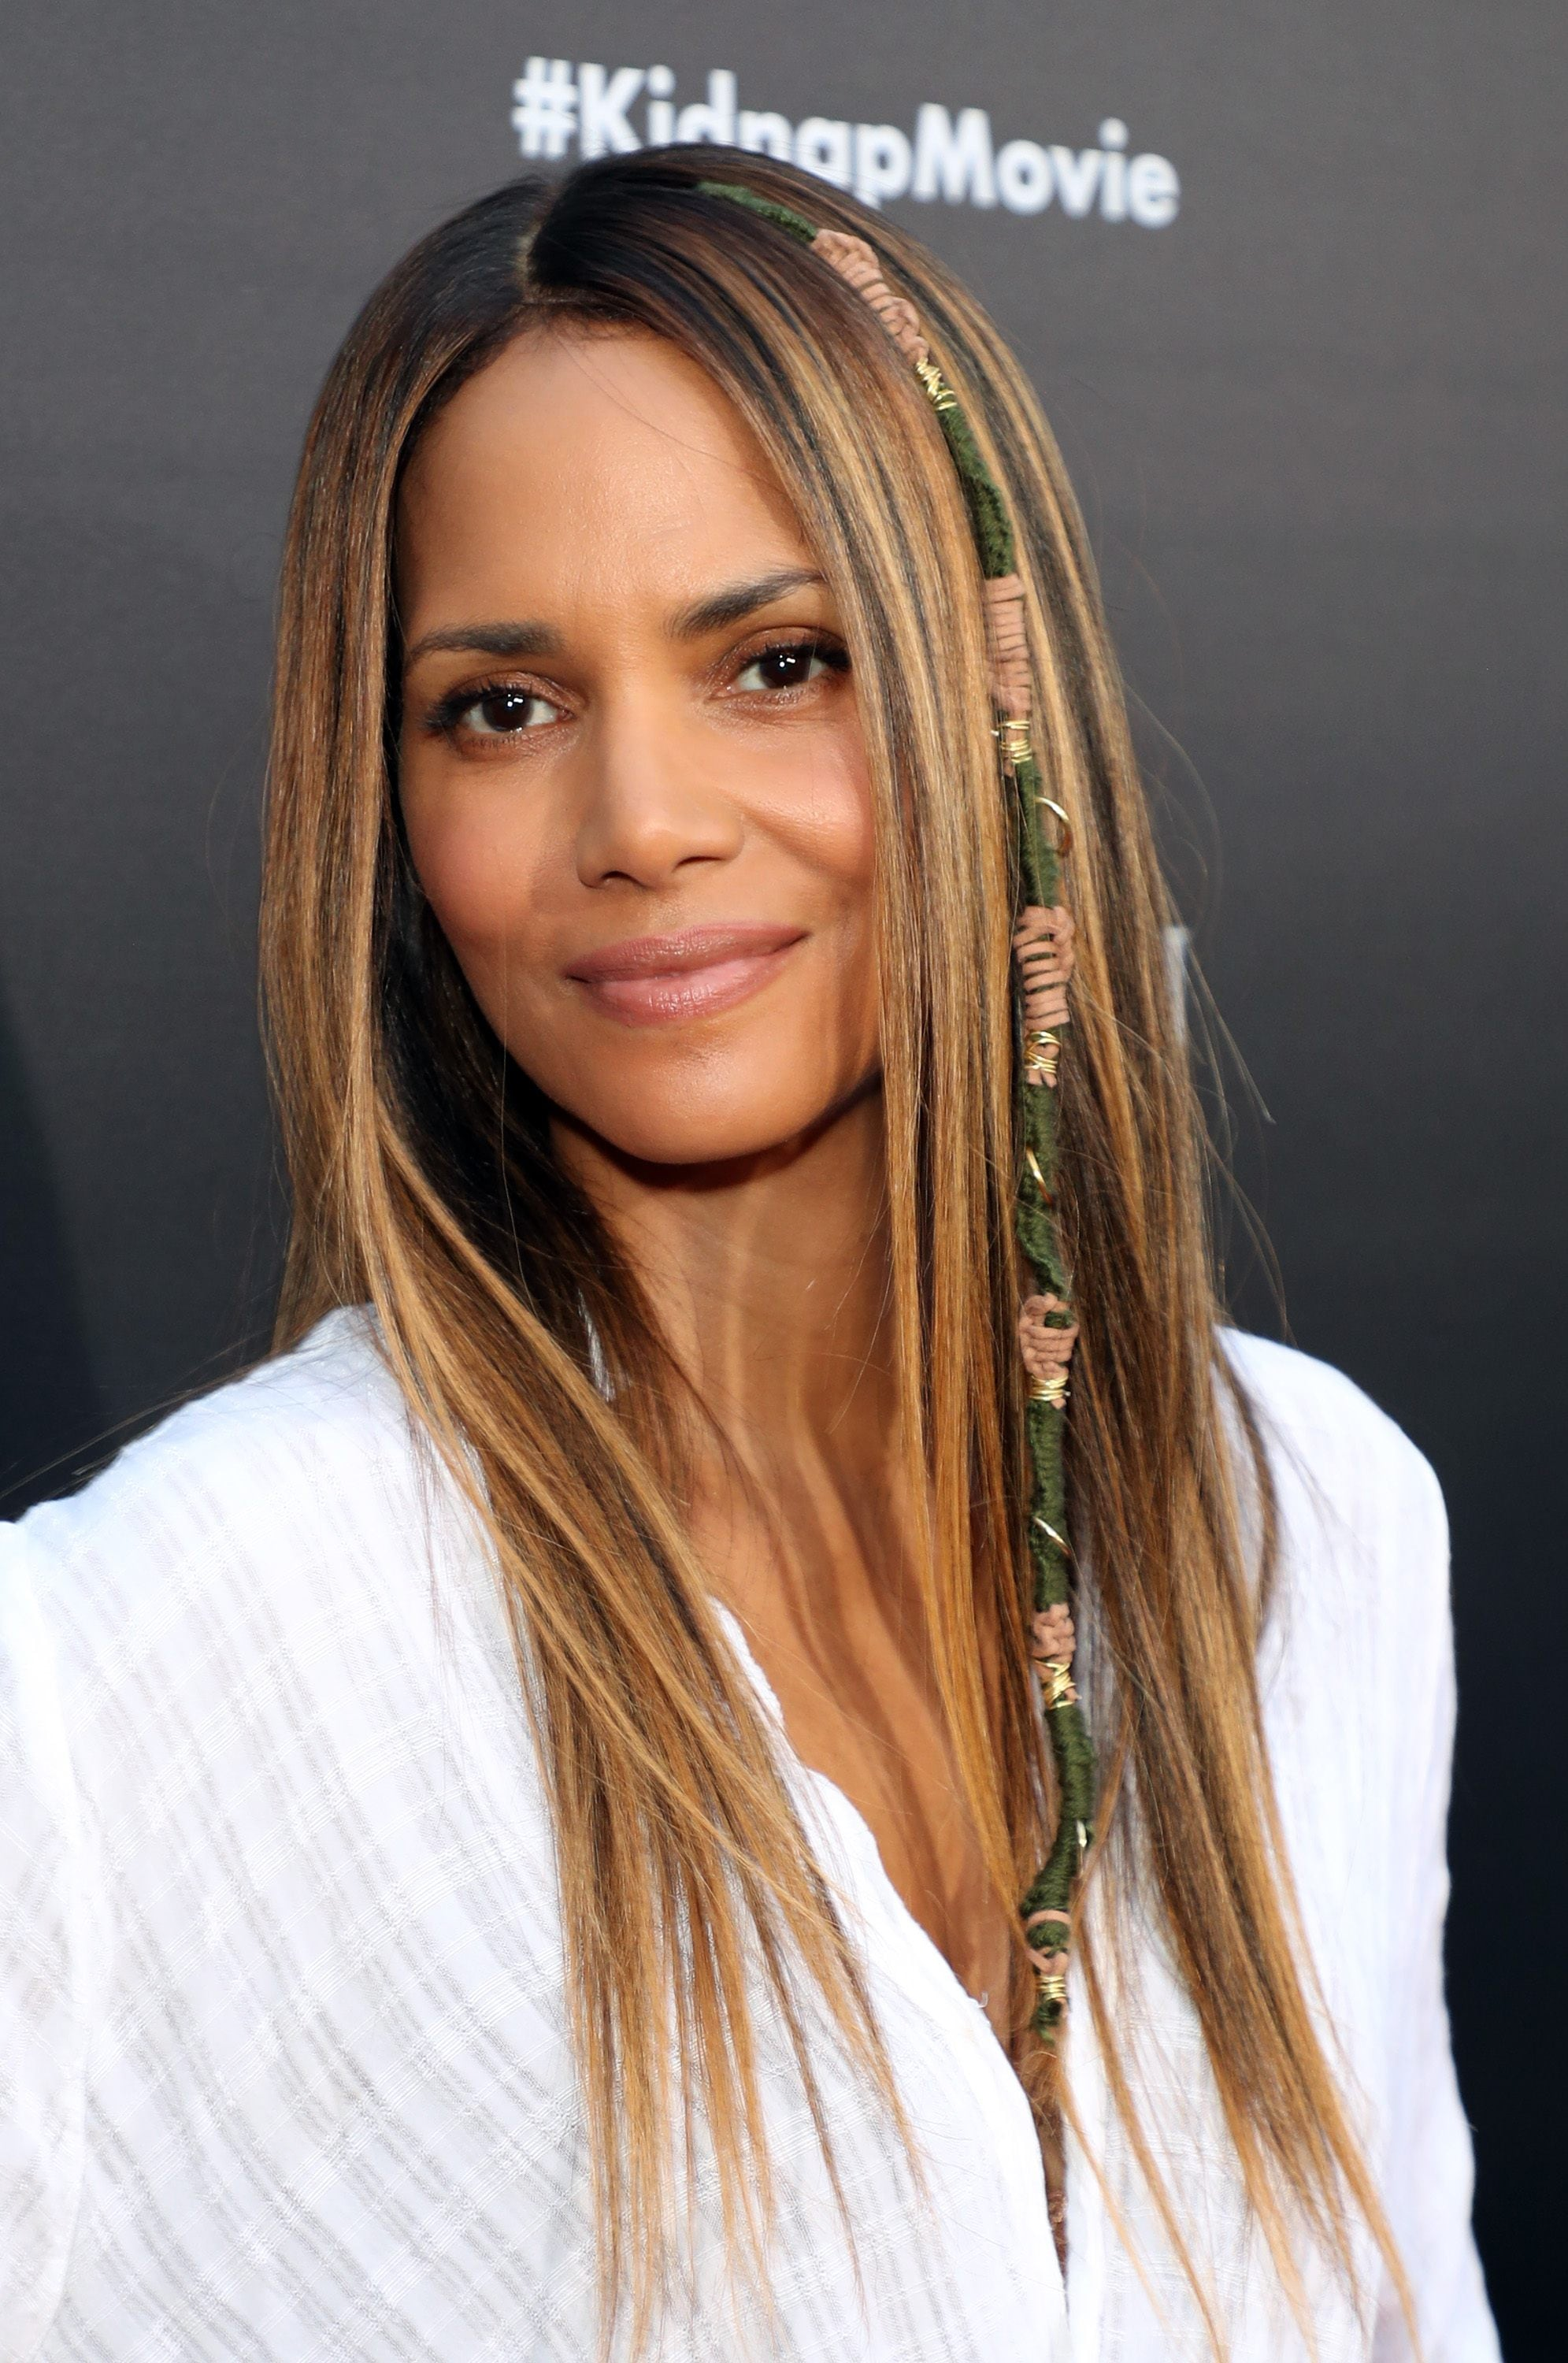 halle berry with straight long light brown hair with darker brunette lowlights and a patterned hair wrap